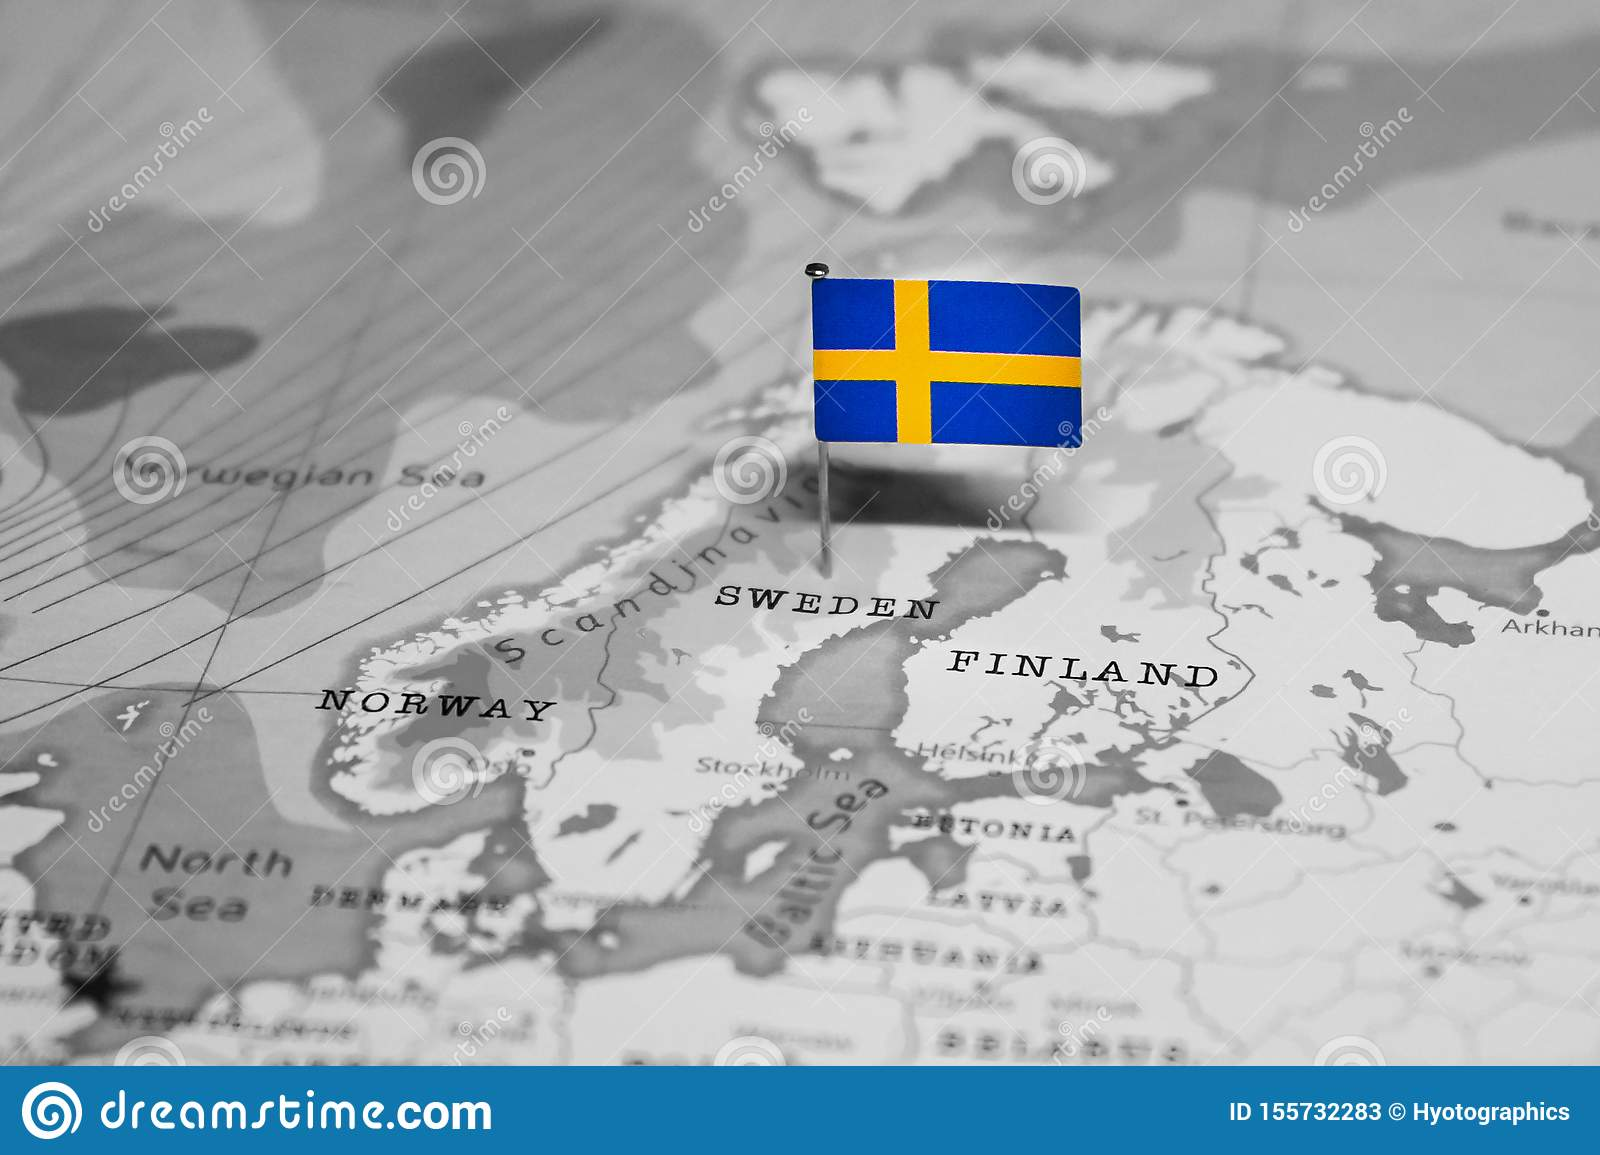 The Flag Of Sweden In The World Map Stock Image - Image of ...